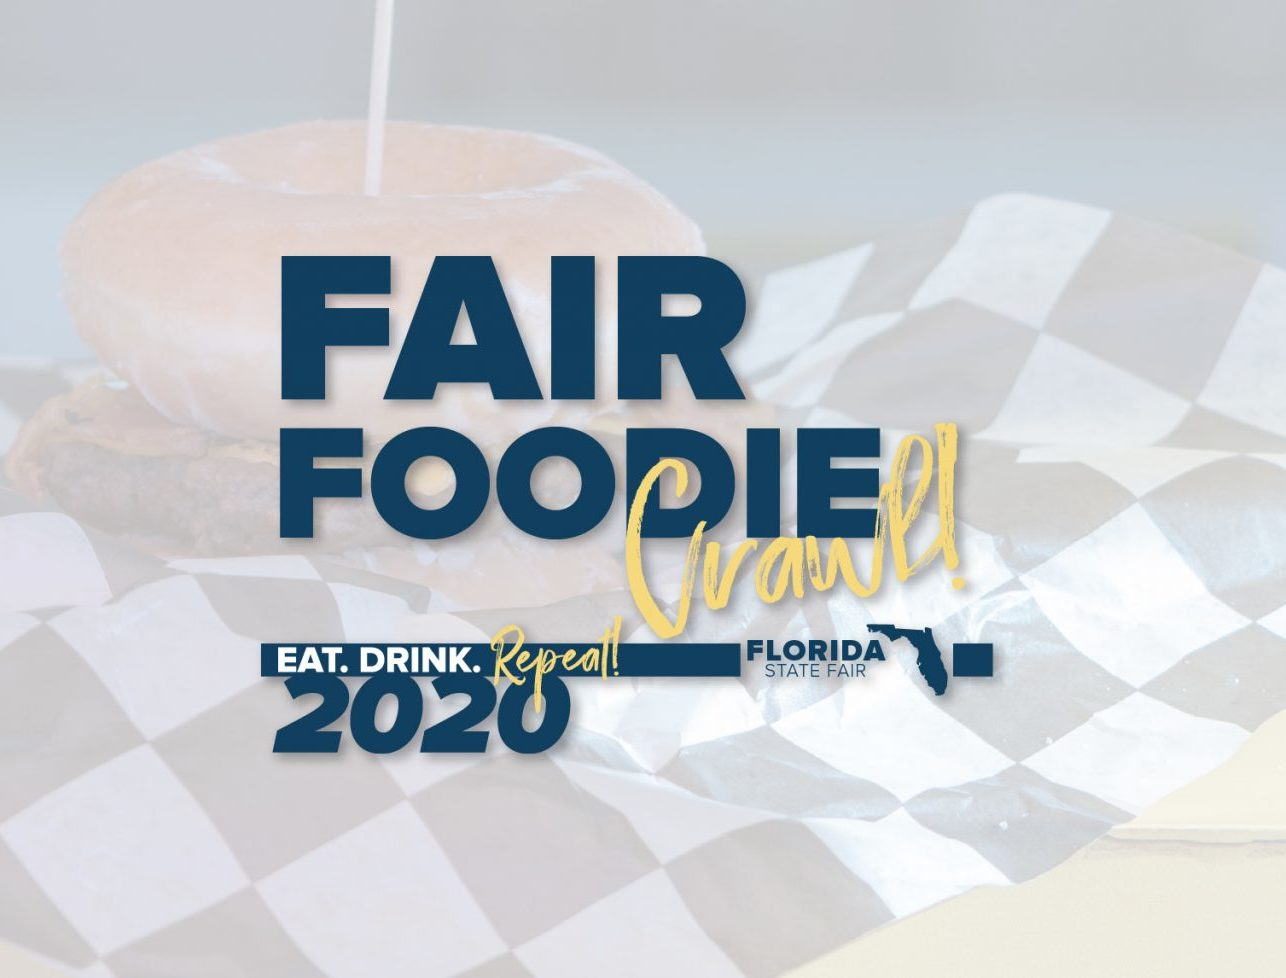 Fair Foodie Crawl – Florida State Fair With Regard To Florida State Fairgrounds Schedule Of Events